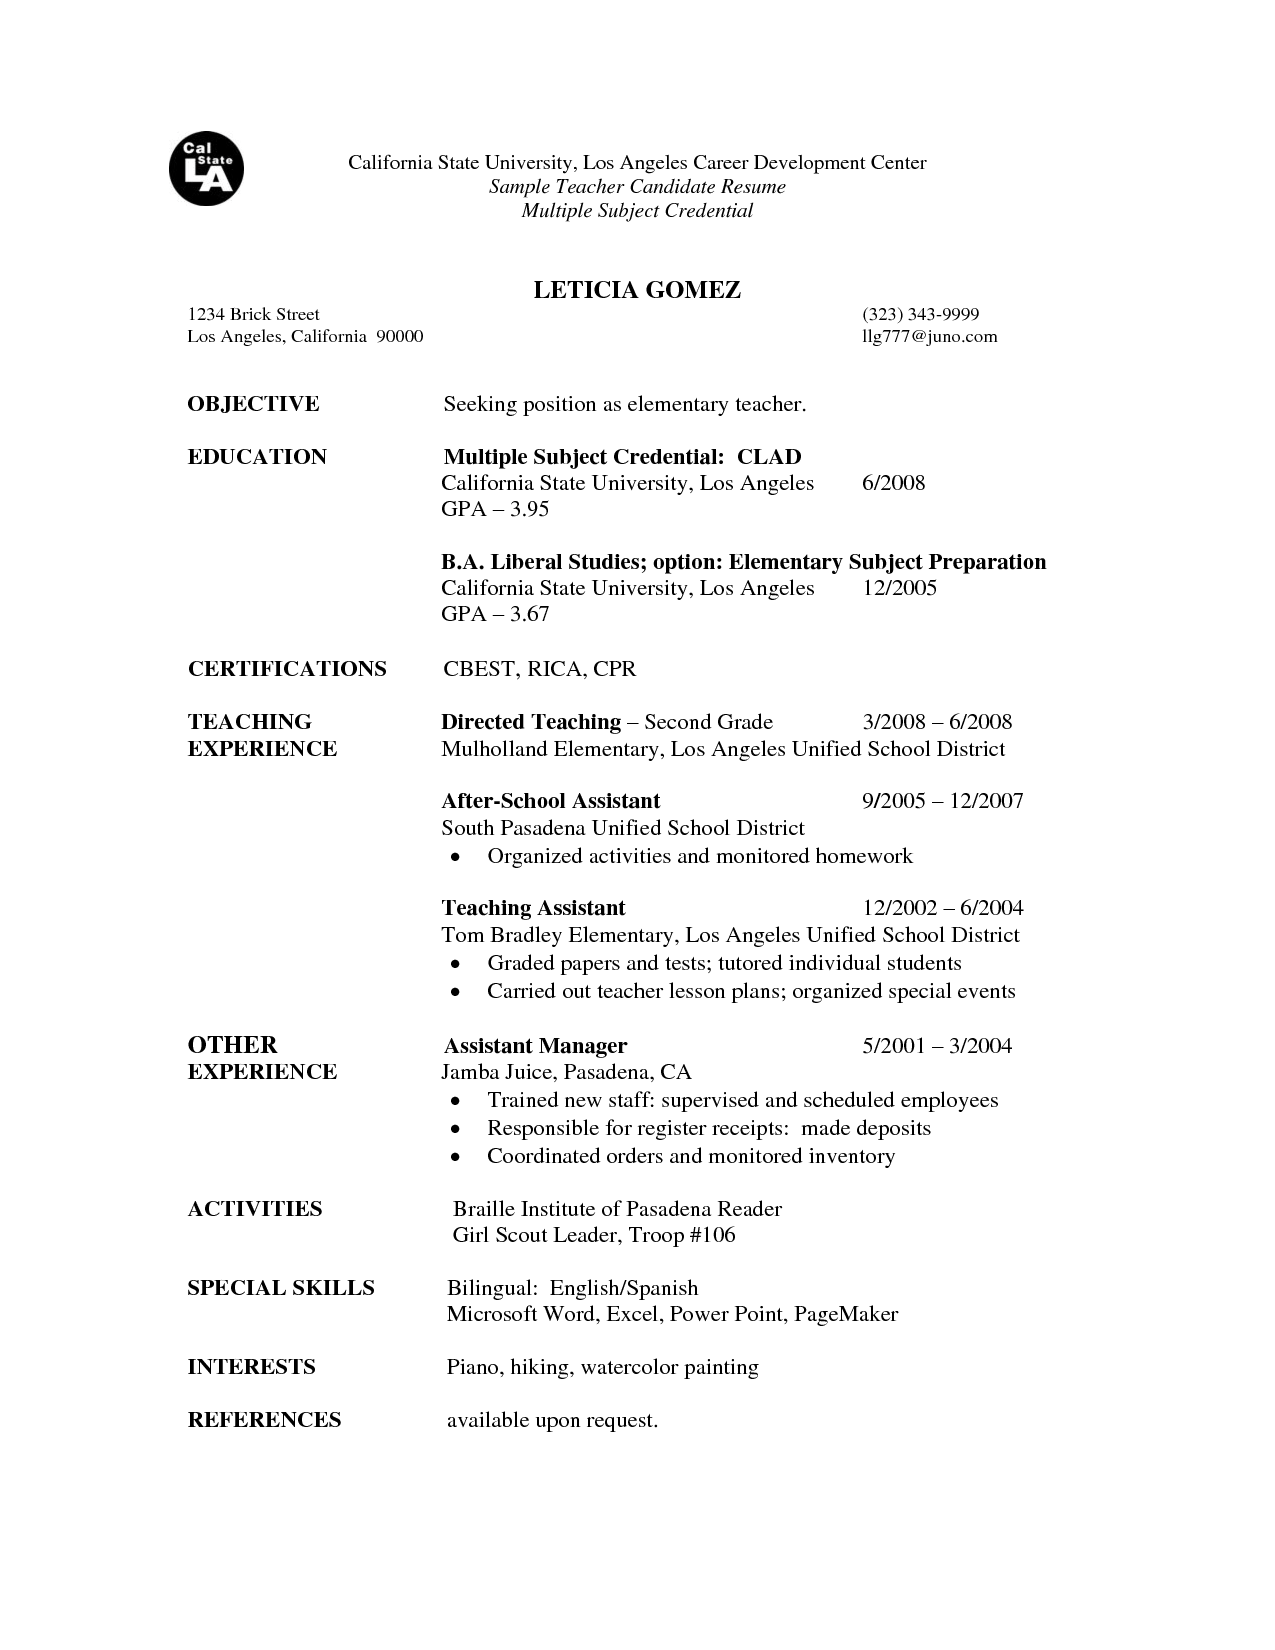 Resume Format Microsoft Word Stunning Image Result For First Resume For Teacher  Resume  Pinterest Decorating Inspiration